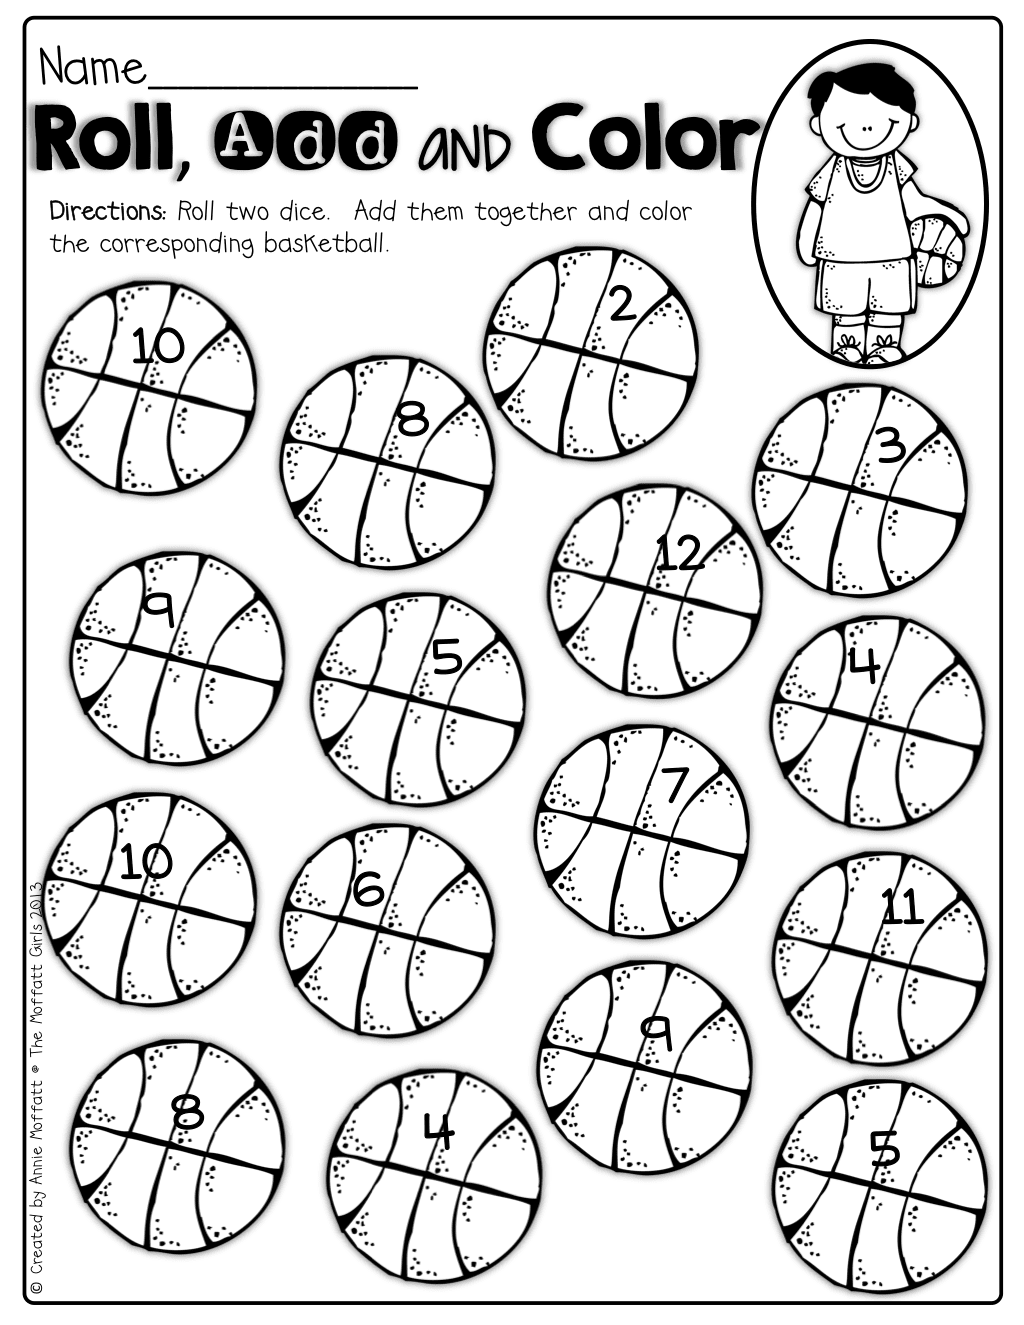 Roll 2 Dice, Add The Up And Color The Basketball! Such A Fun Way